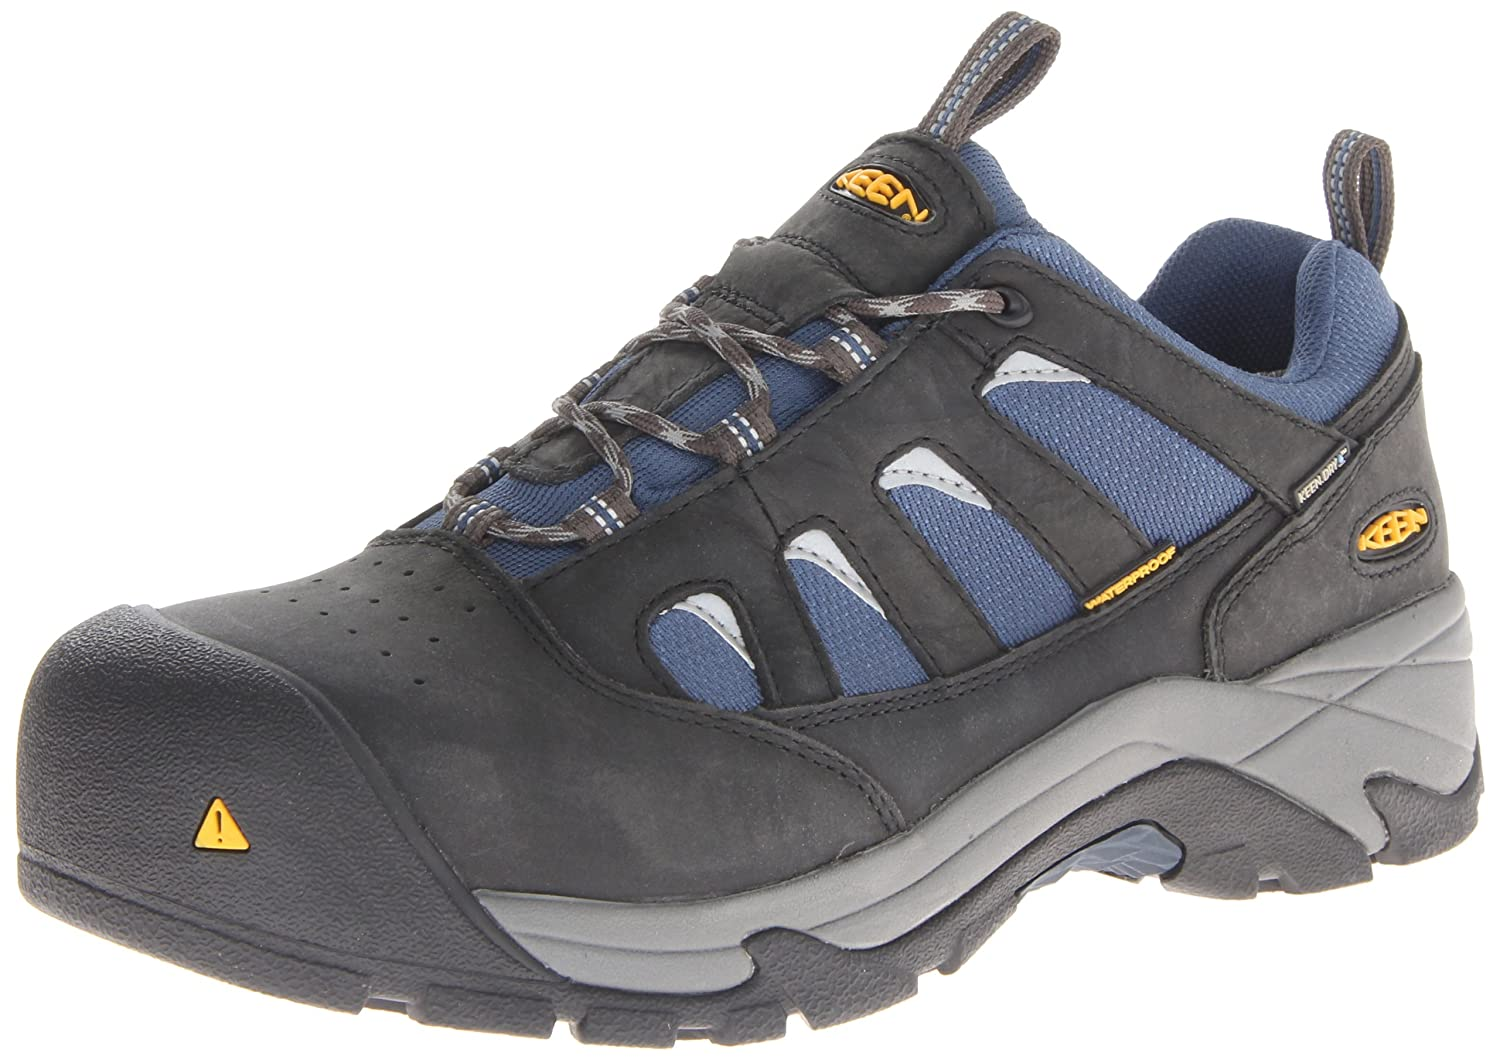 Analytical Baffin Swamp Buggy Shoes Uk9 Sporting Goods